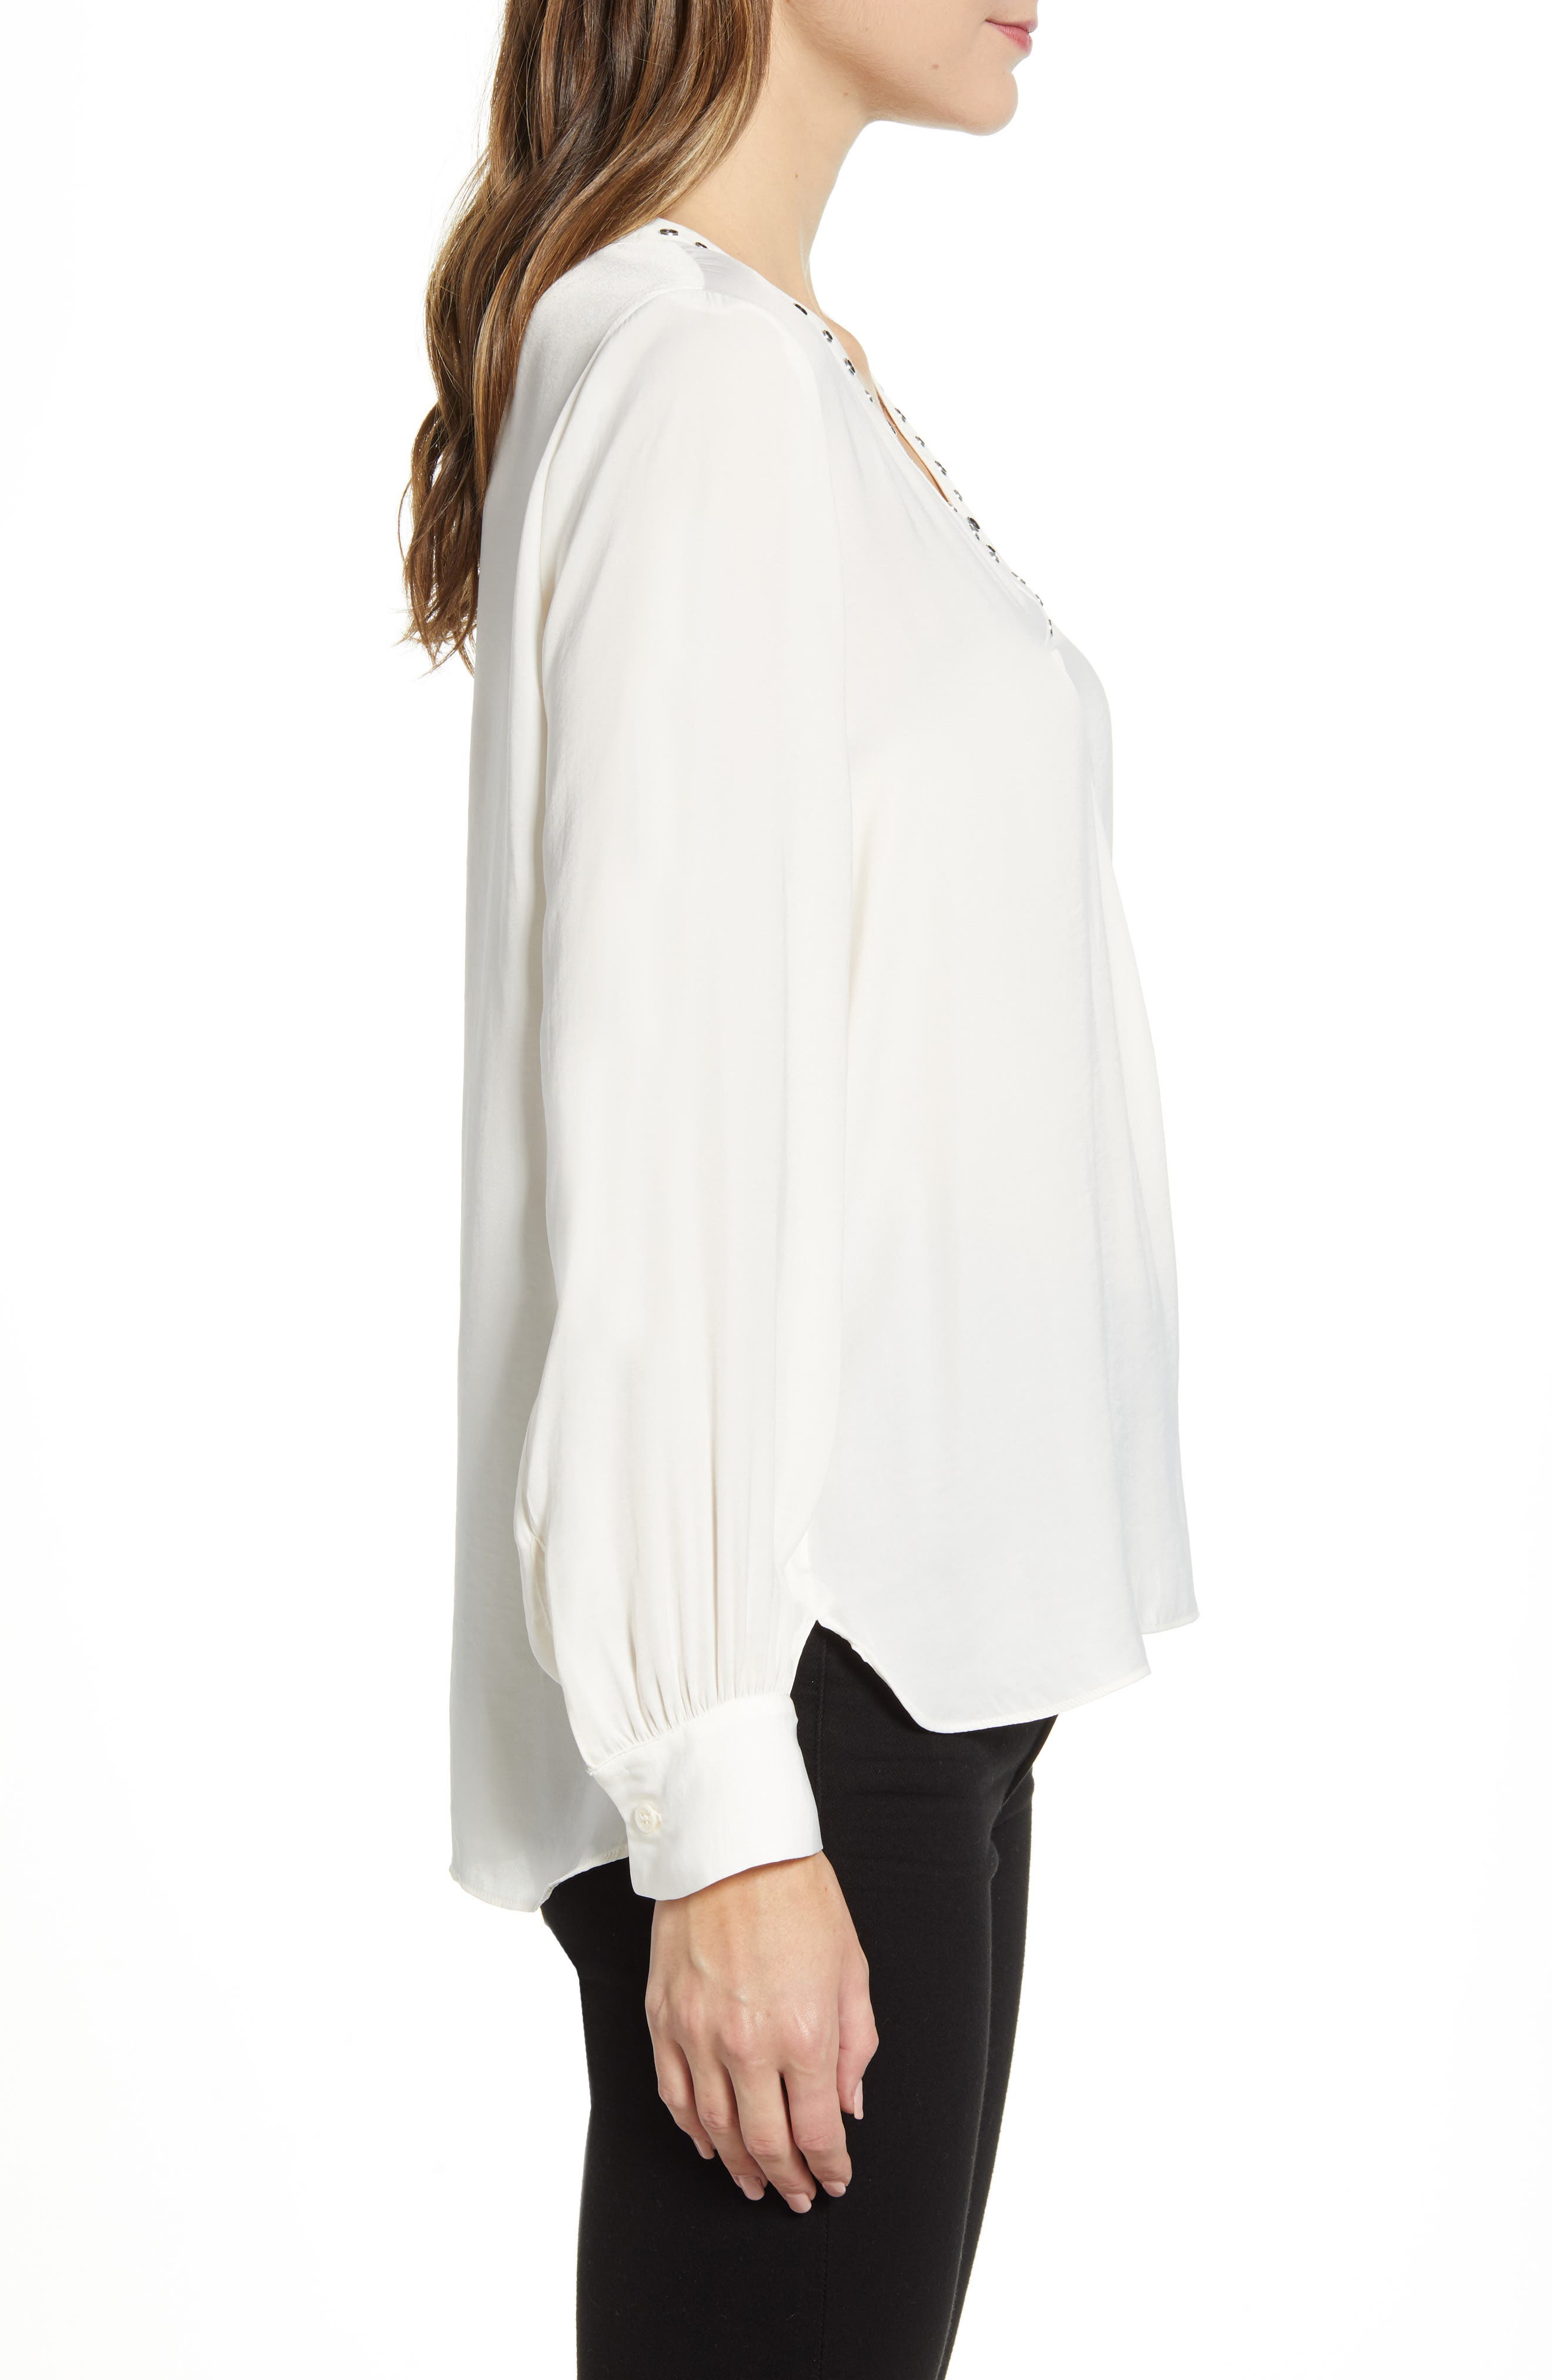 Vince Camuto Tops Studded Rumple Blouse